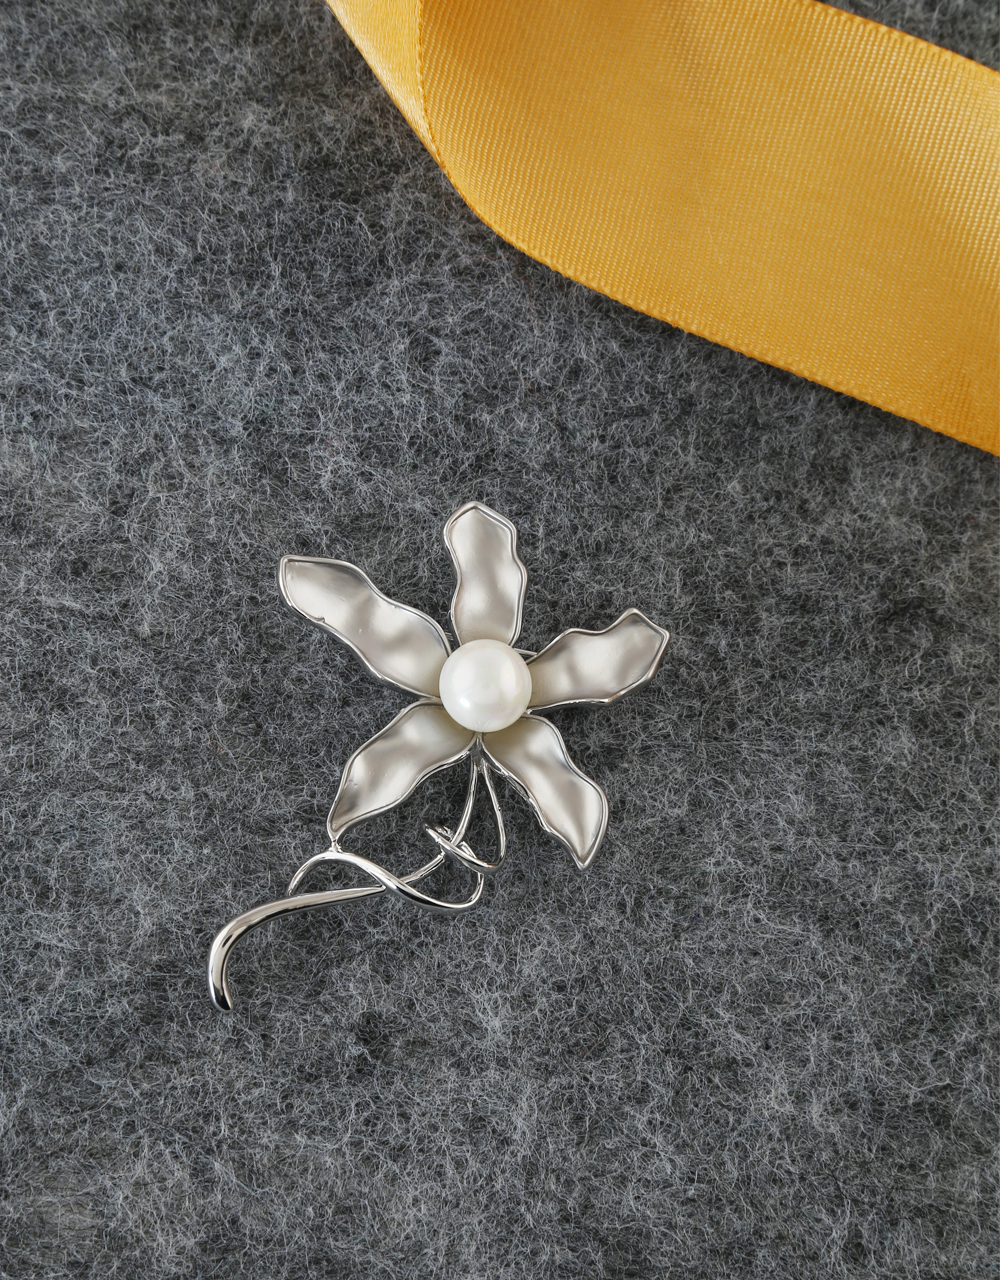 Silver Finish Floral Design Brooch Pin For Girls